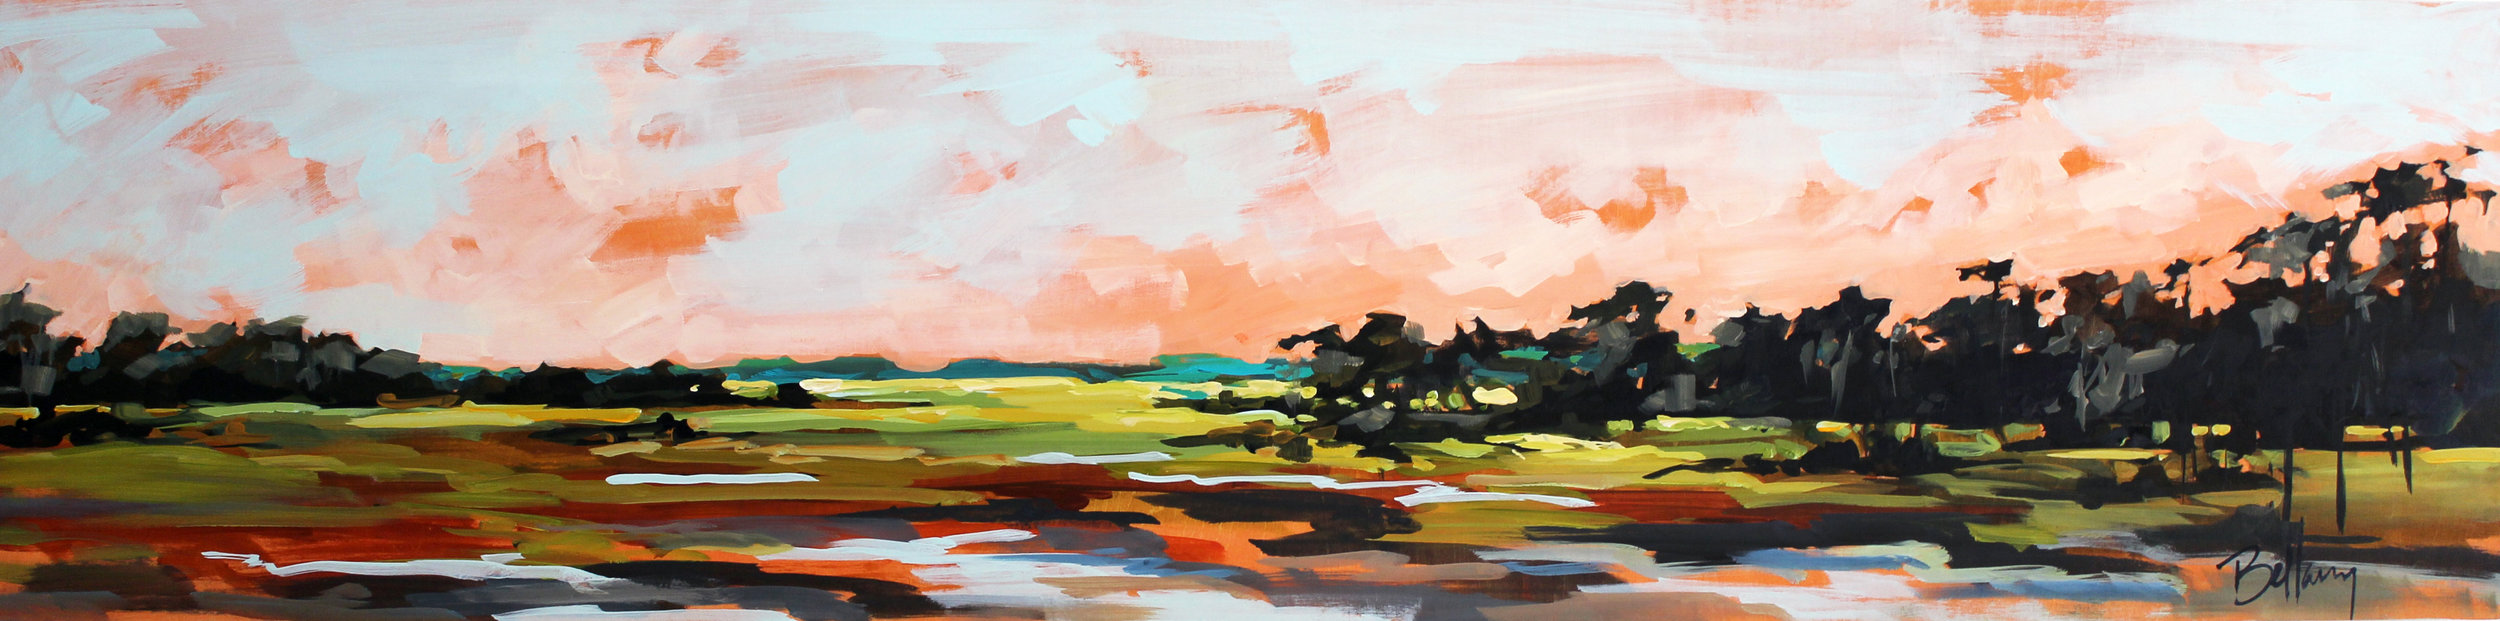 Marsh 12x48 Oil on Canvas $2200